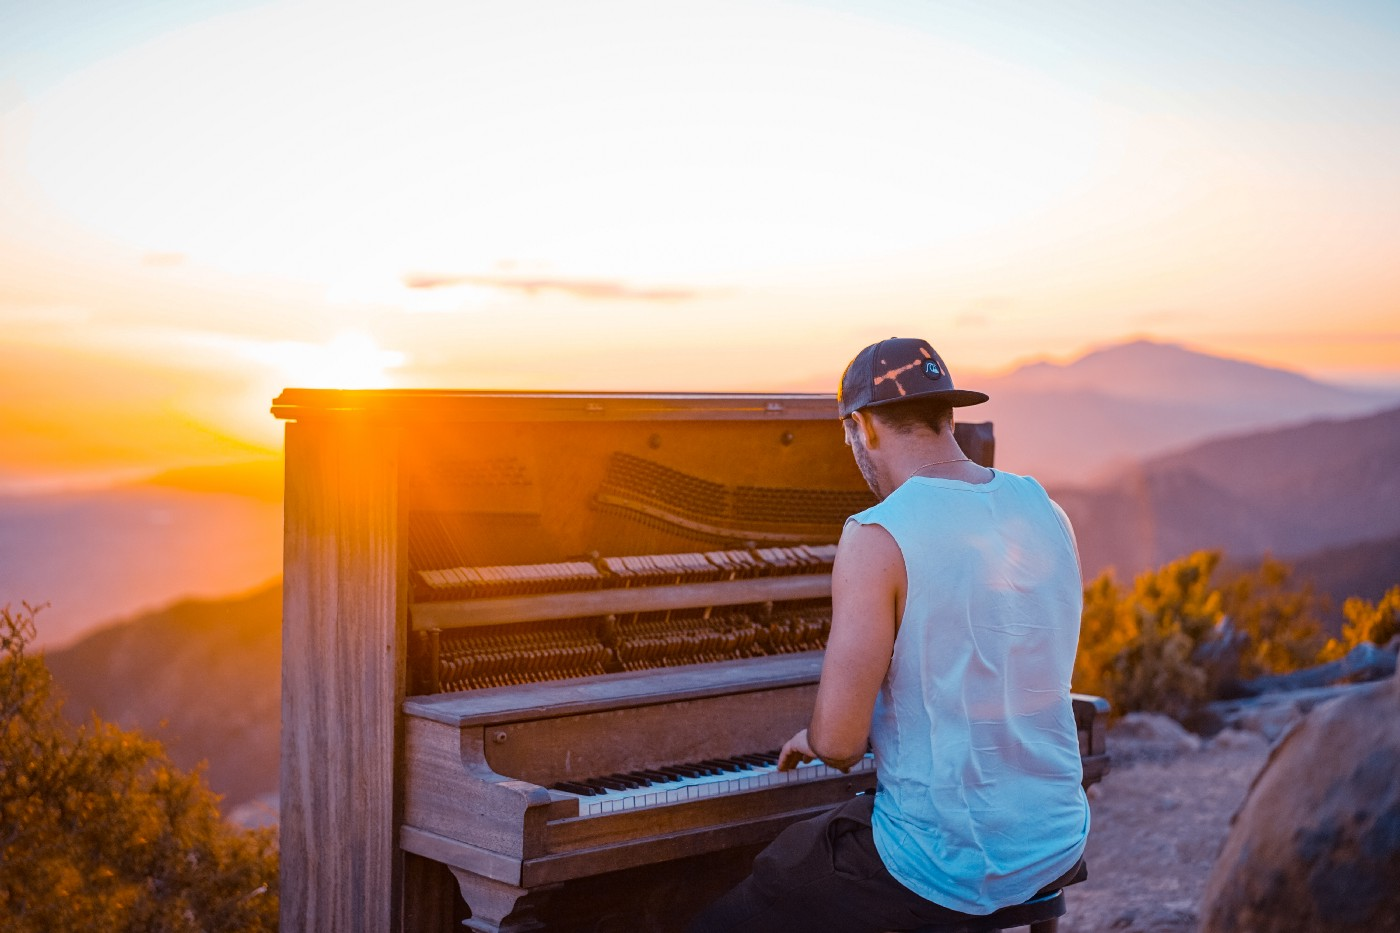 A man playing an organ or piano in front of mountains in the natural air.